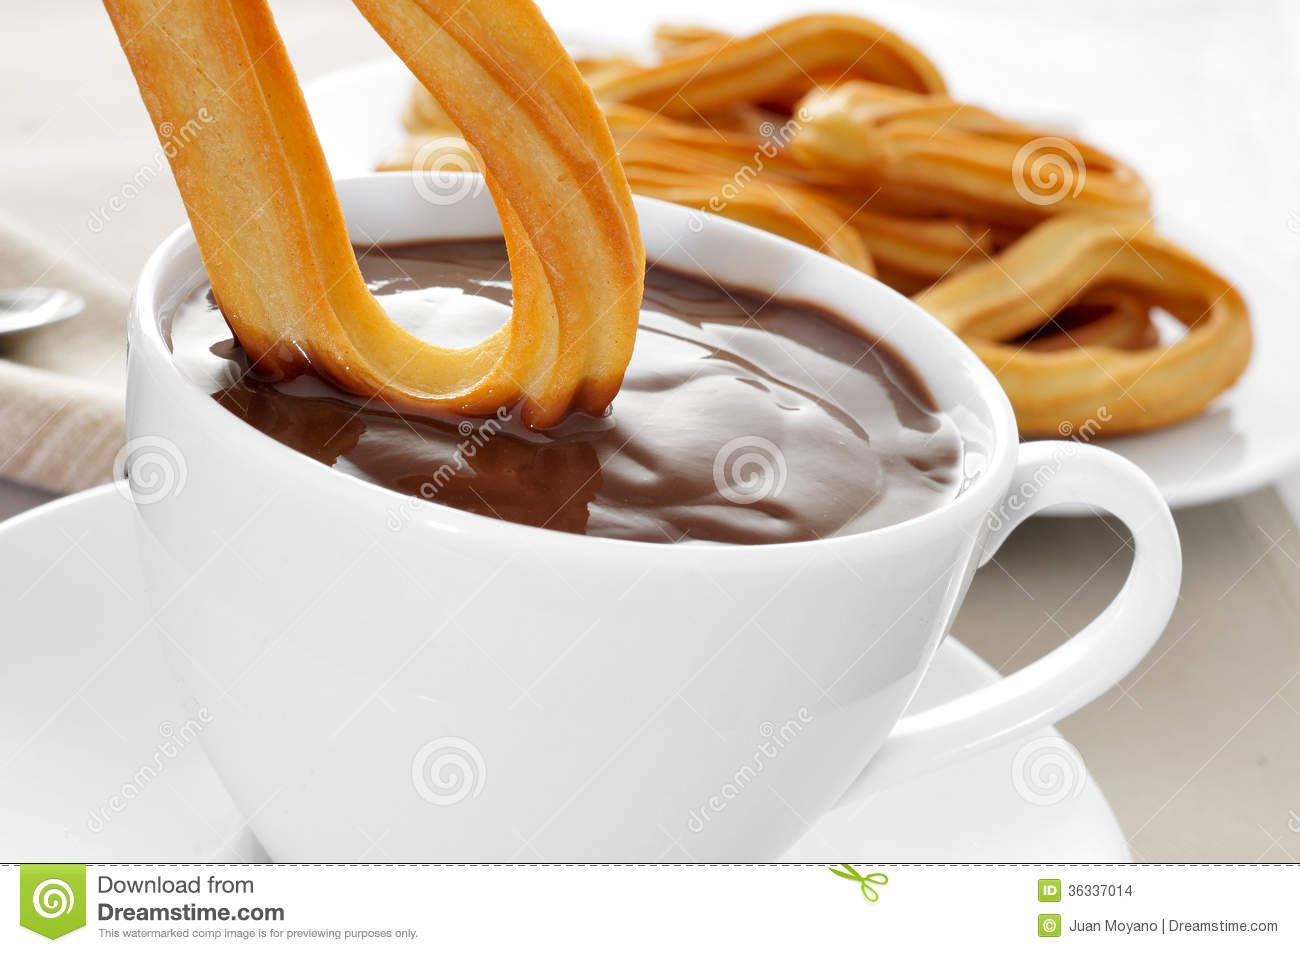 Churros Con Chocolate Typical Spanish Sweet Snack Stock Image ...